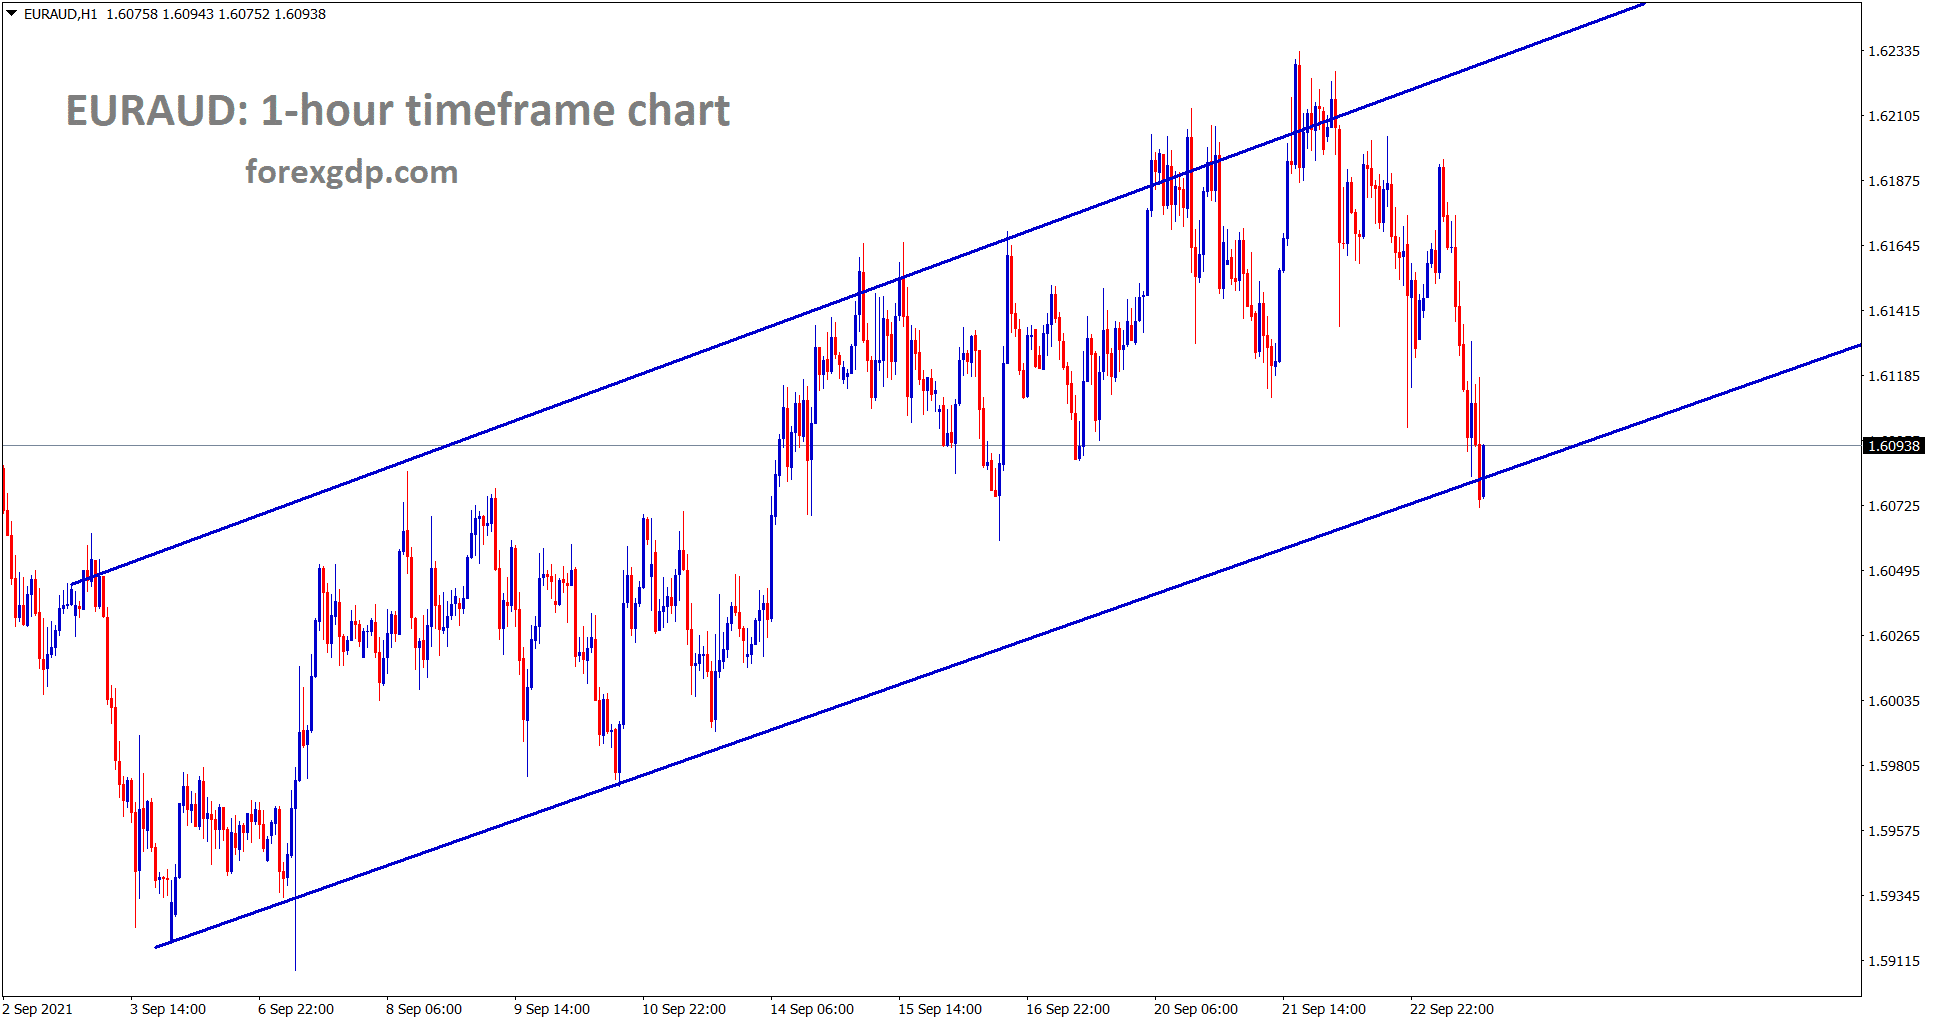 EURAUD is moving between the channel ranges wait for breakout from this channel